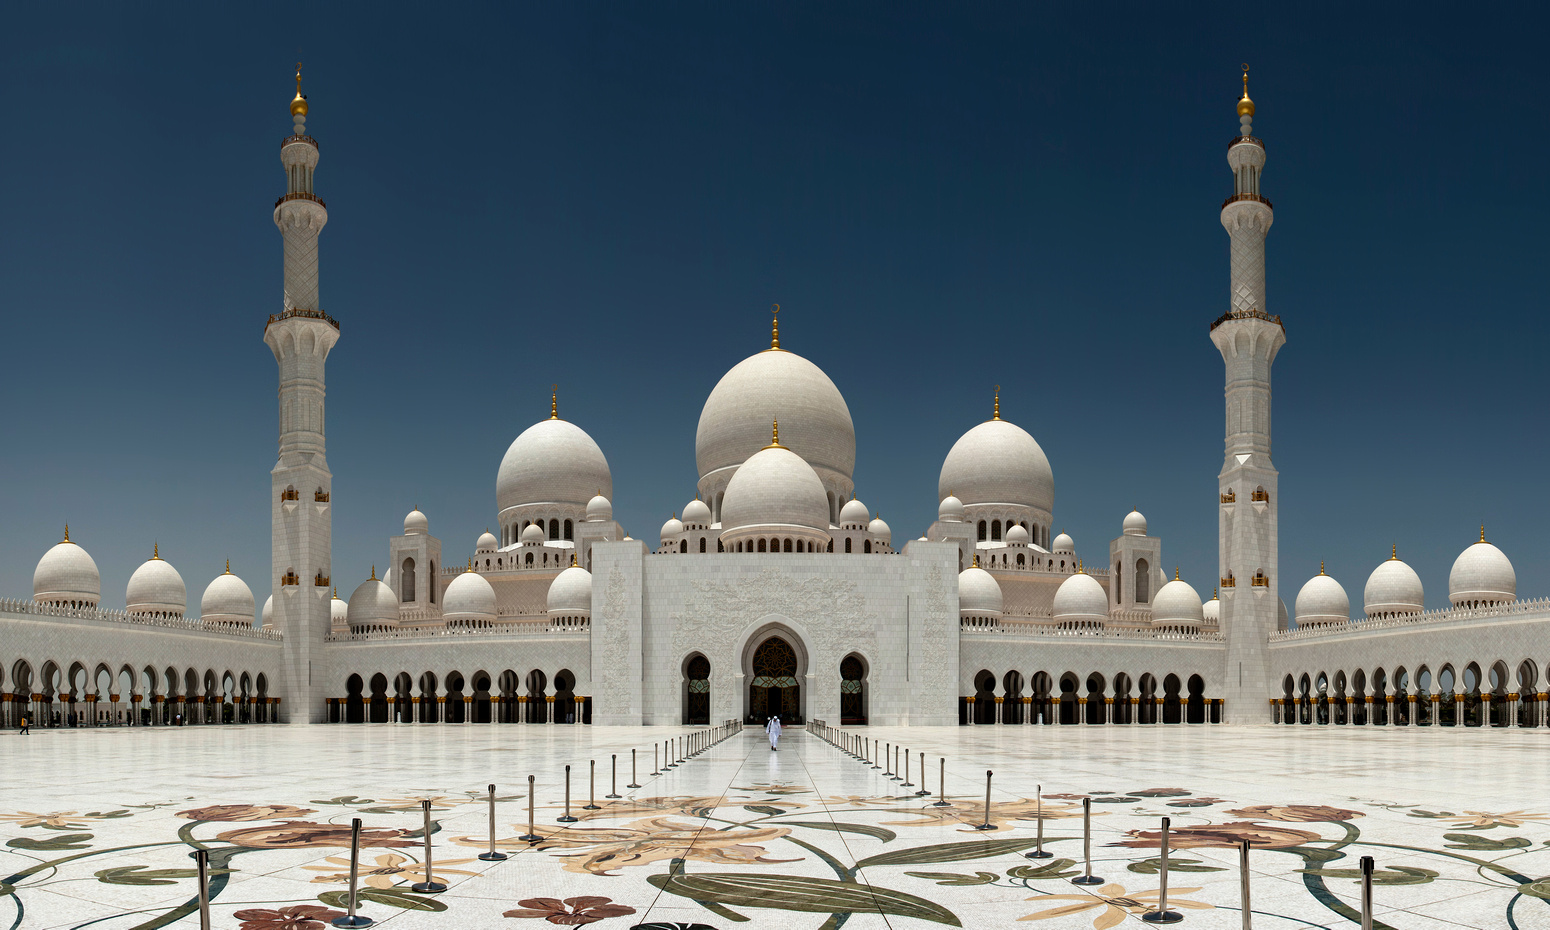 Sheikh Zayed Grand Mosque – beautiful religious site